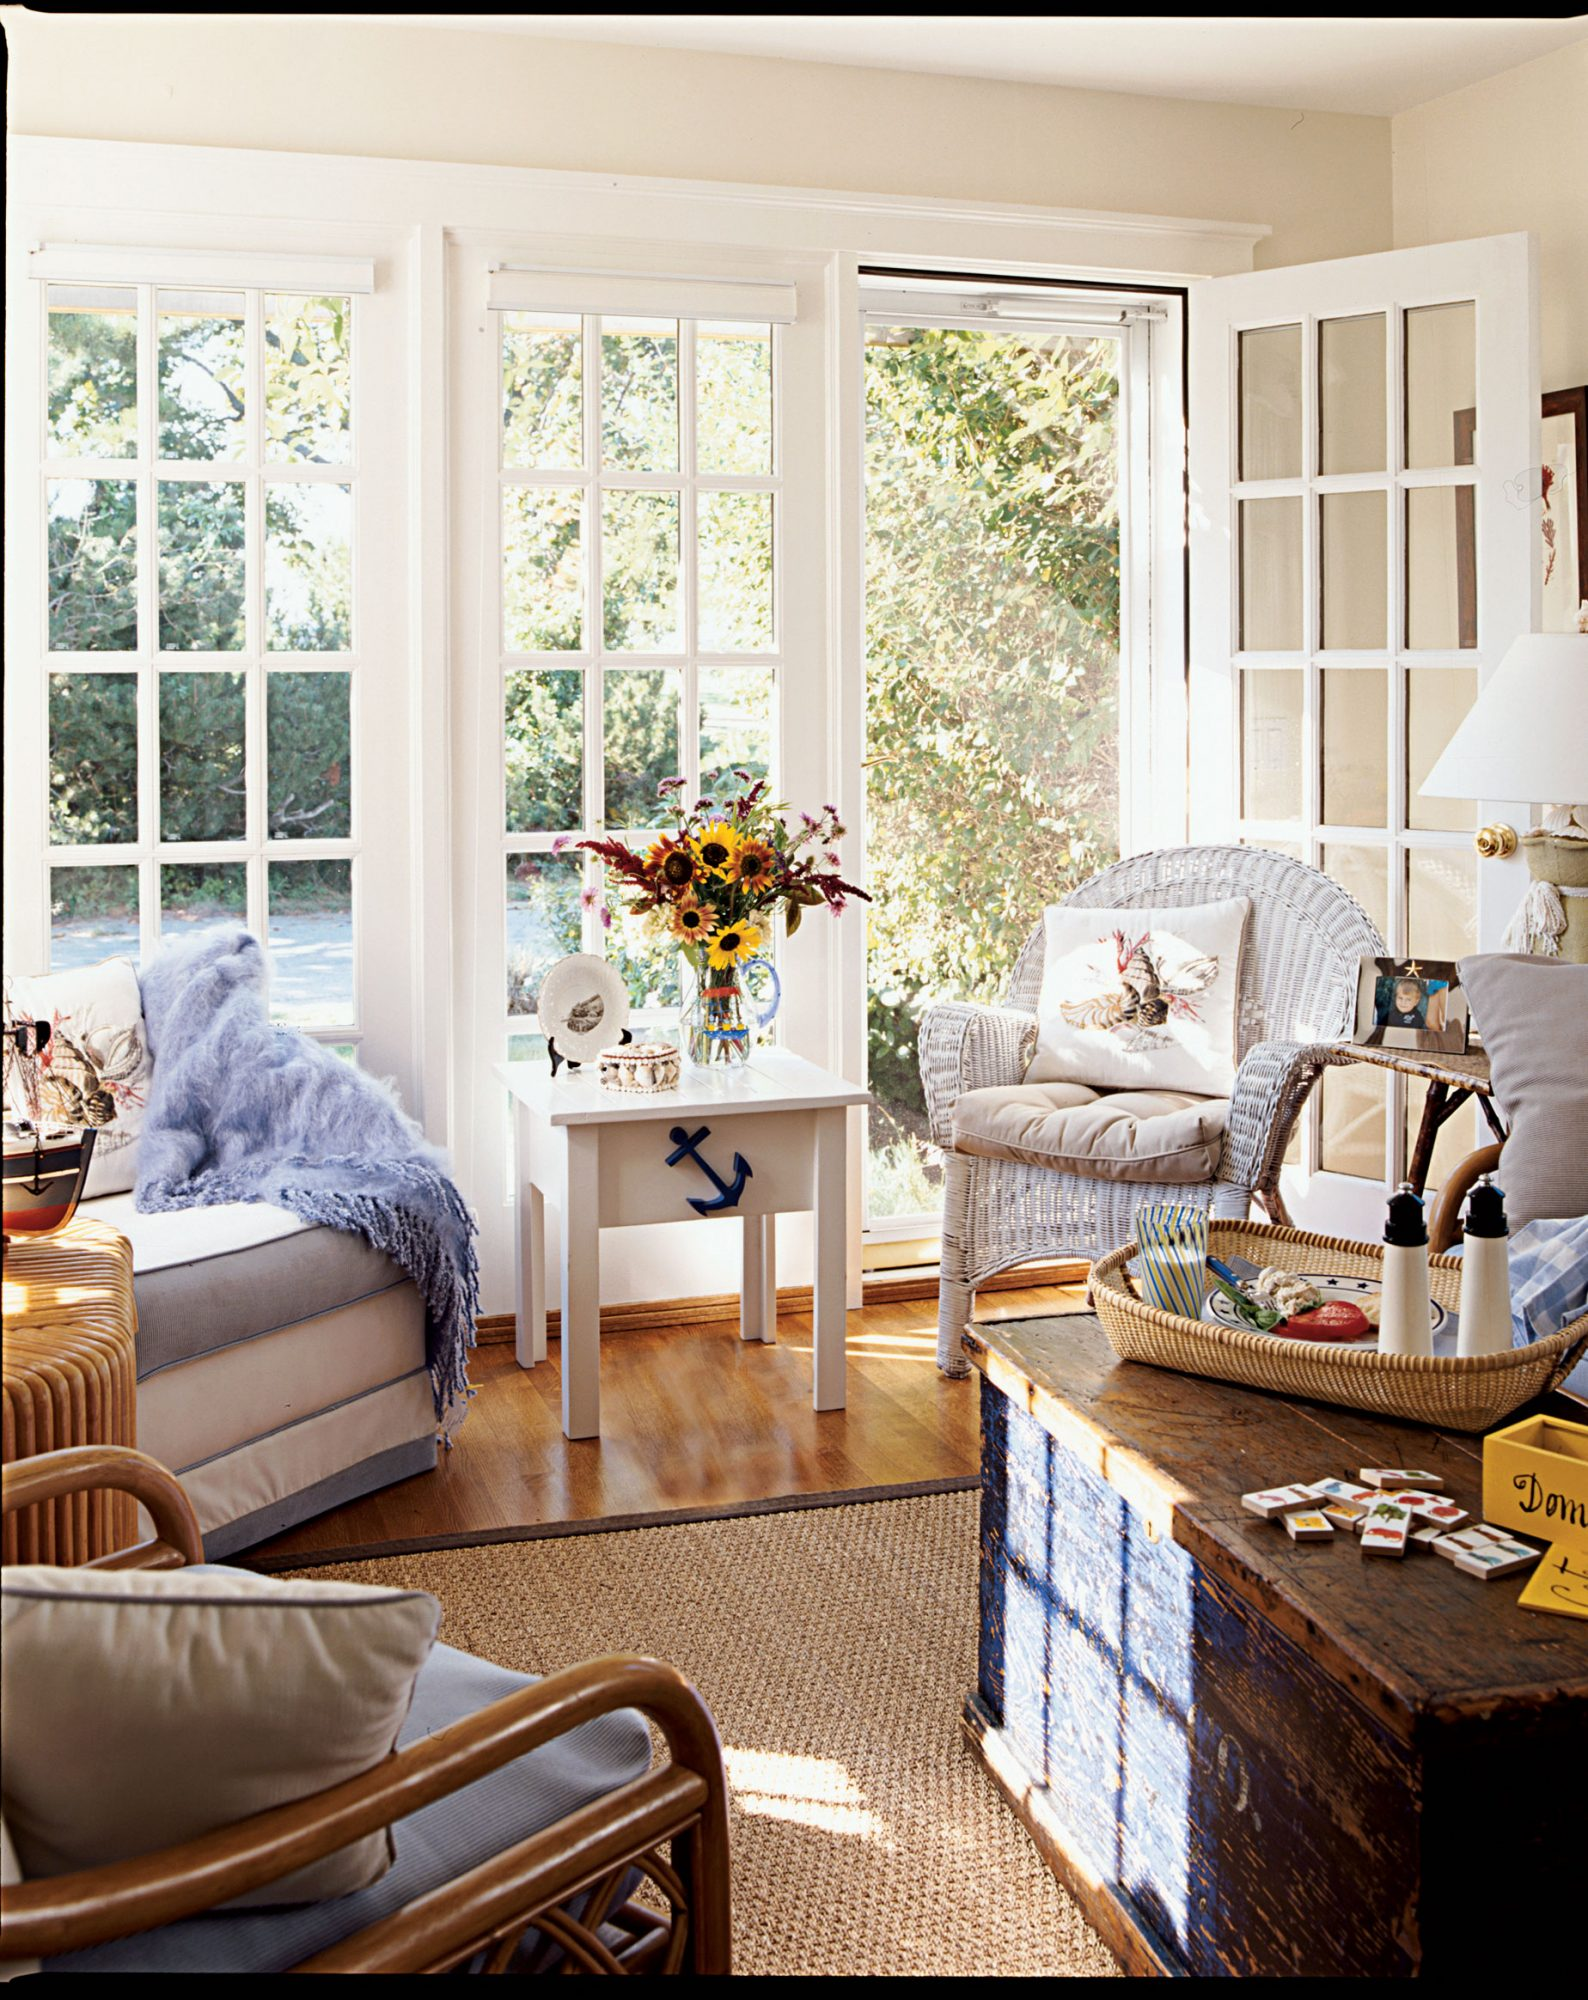 Shake things up in your living room by choosing mismatched pieces that are united by a common theme. In this case, it's sea blues and nautical decorative elements.